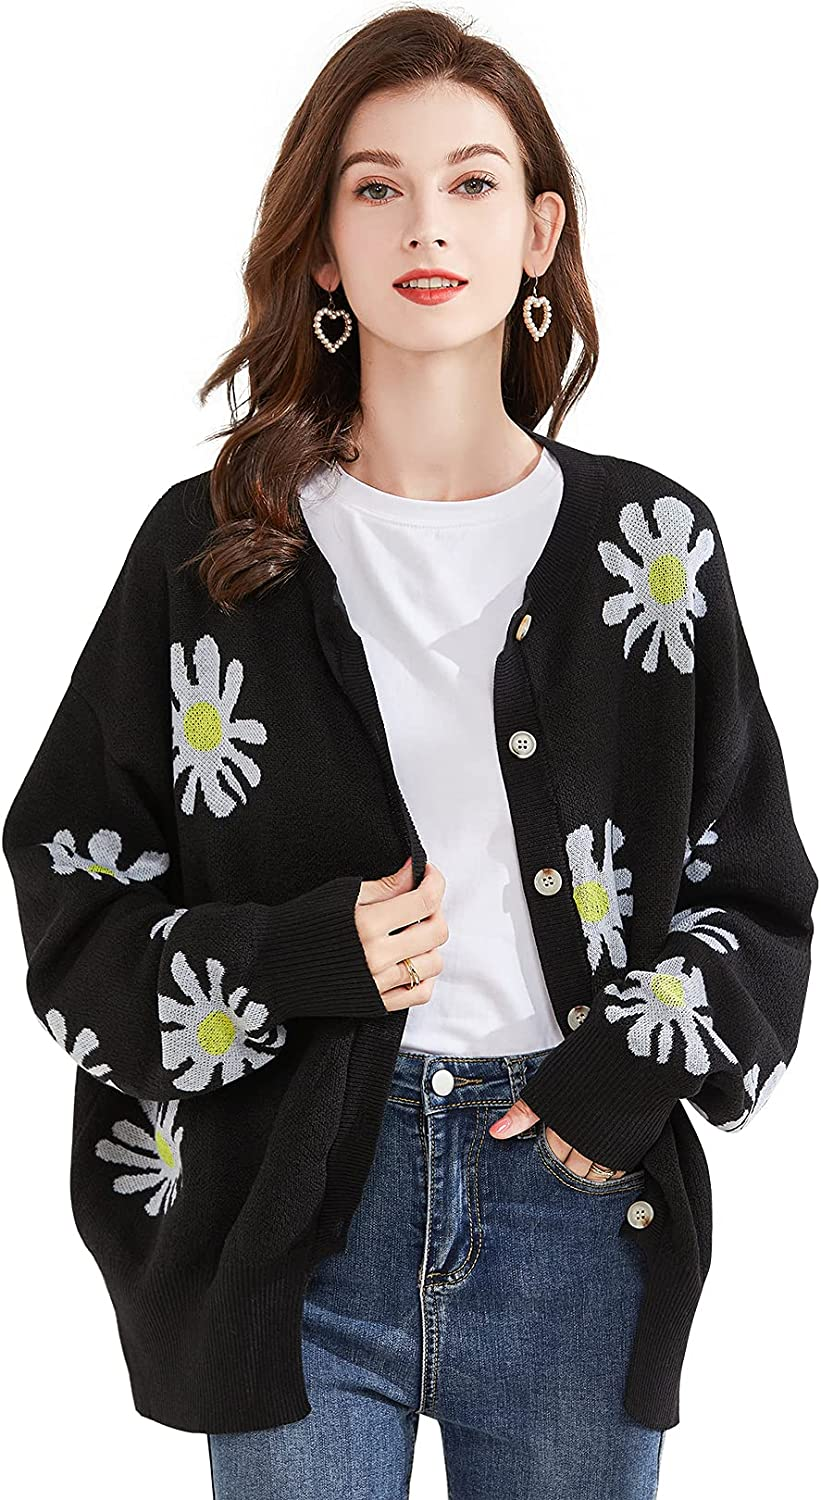 TWOWYHI Cardigan Sweaters for Women Long Sleeve Button Down Crewneck Floral Print Cardigan Sweaters